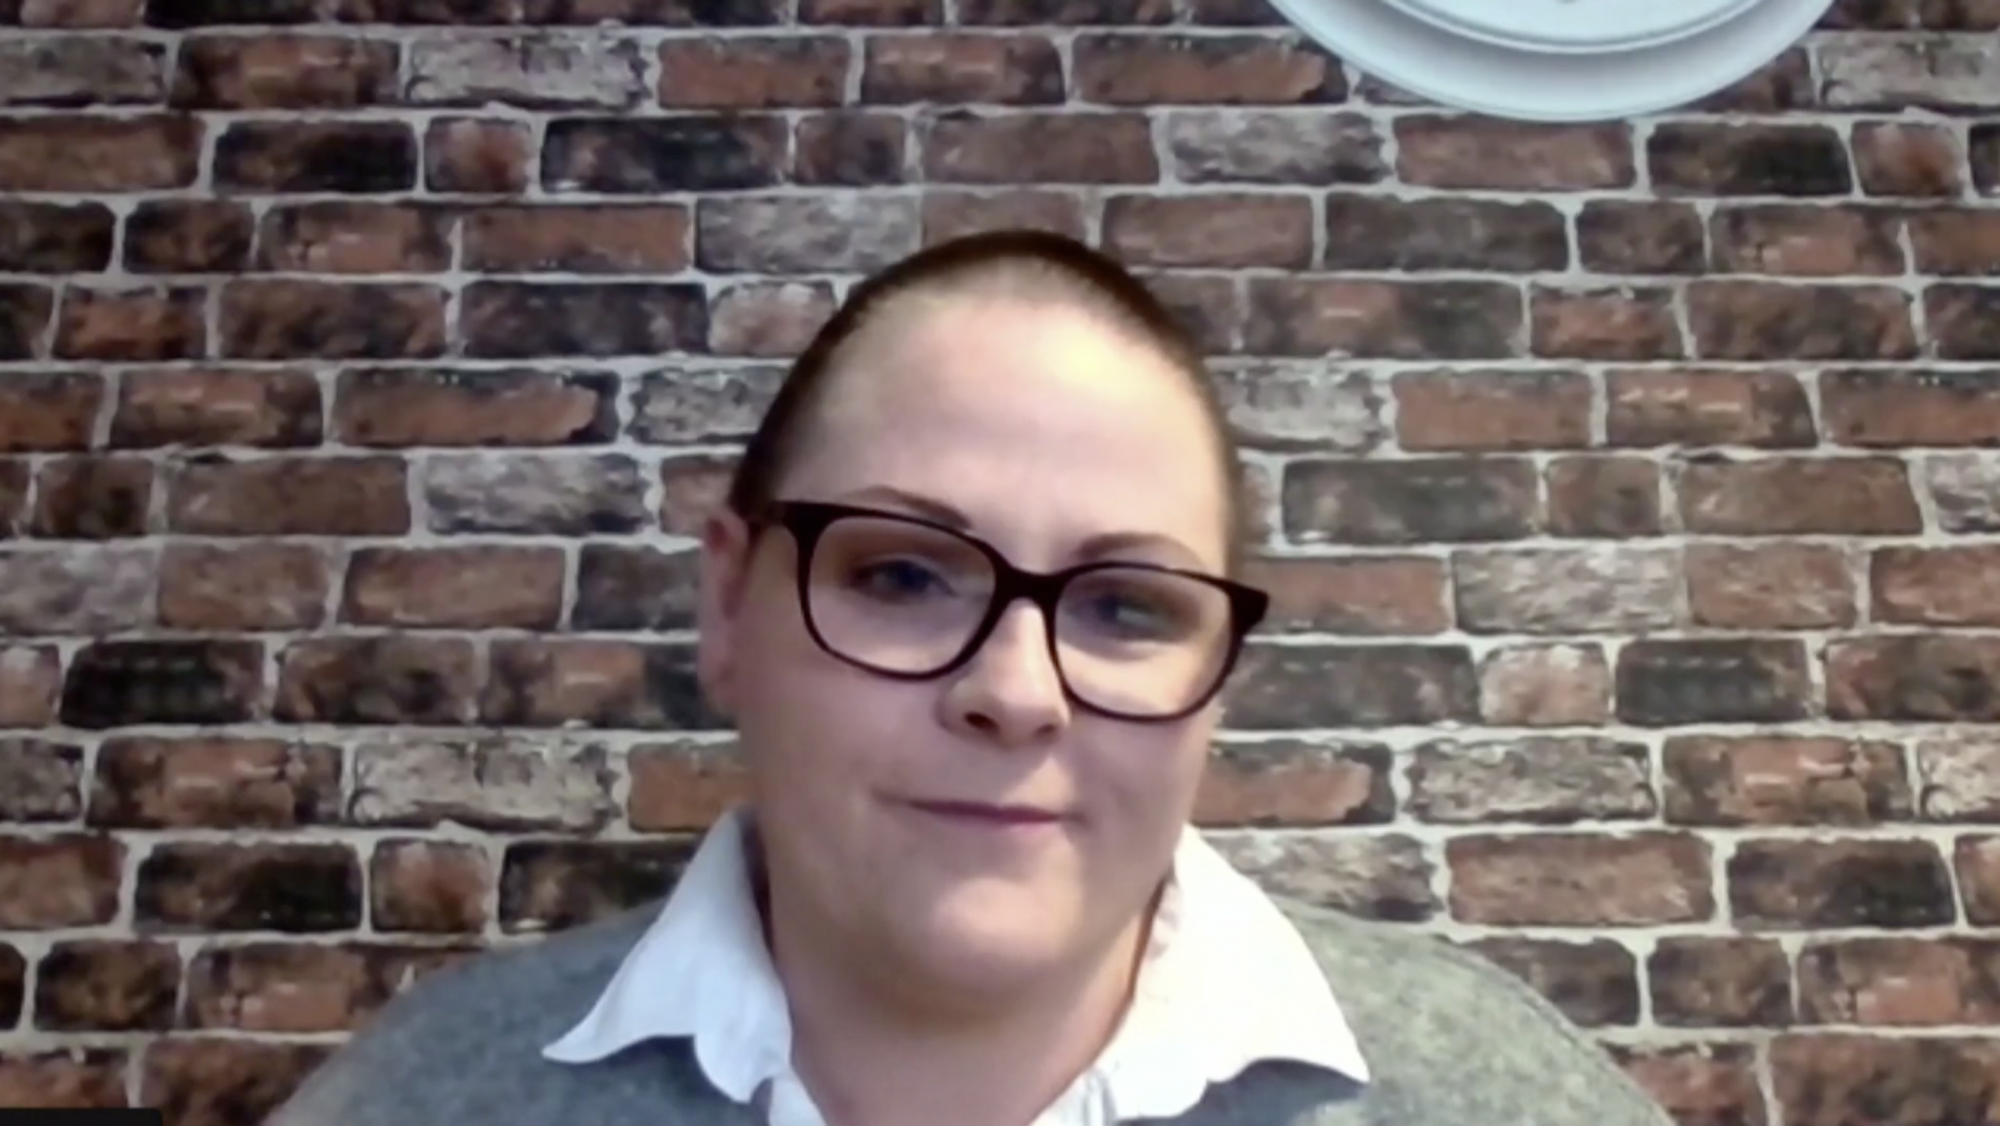 'If we can show they have no monopoly over us, we can move away from their grip' – Lyra McKee's partner Sara Canning – Channel 4 NewsChannel 4 NewsShare on FacebookShare on TwitterShare on WhatsAppShare on WhatsAppShare on WhatsAppLoad more share options